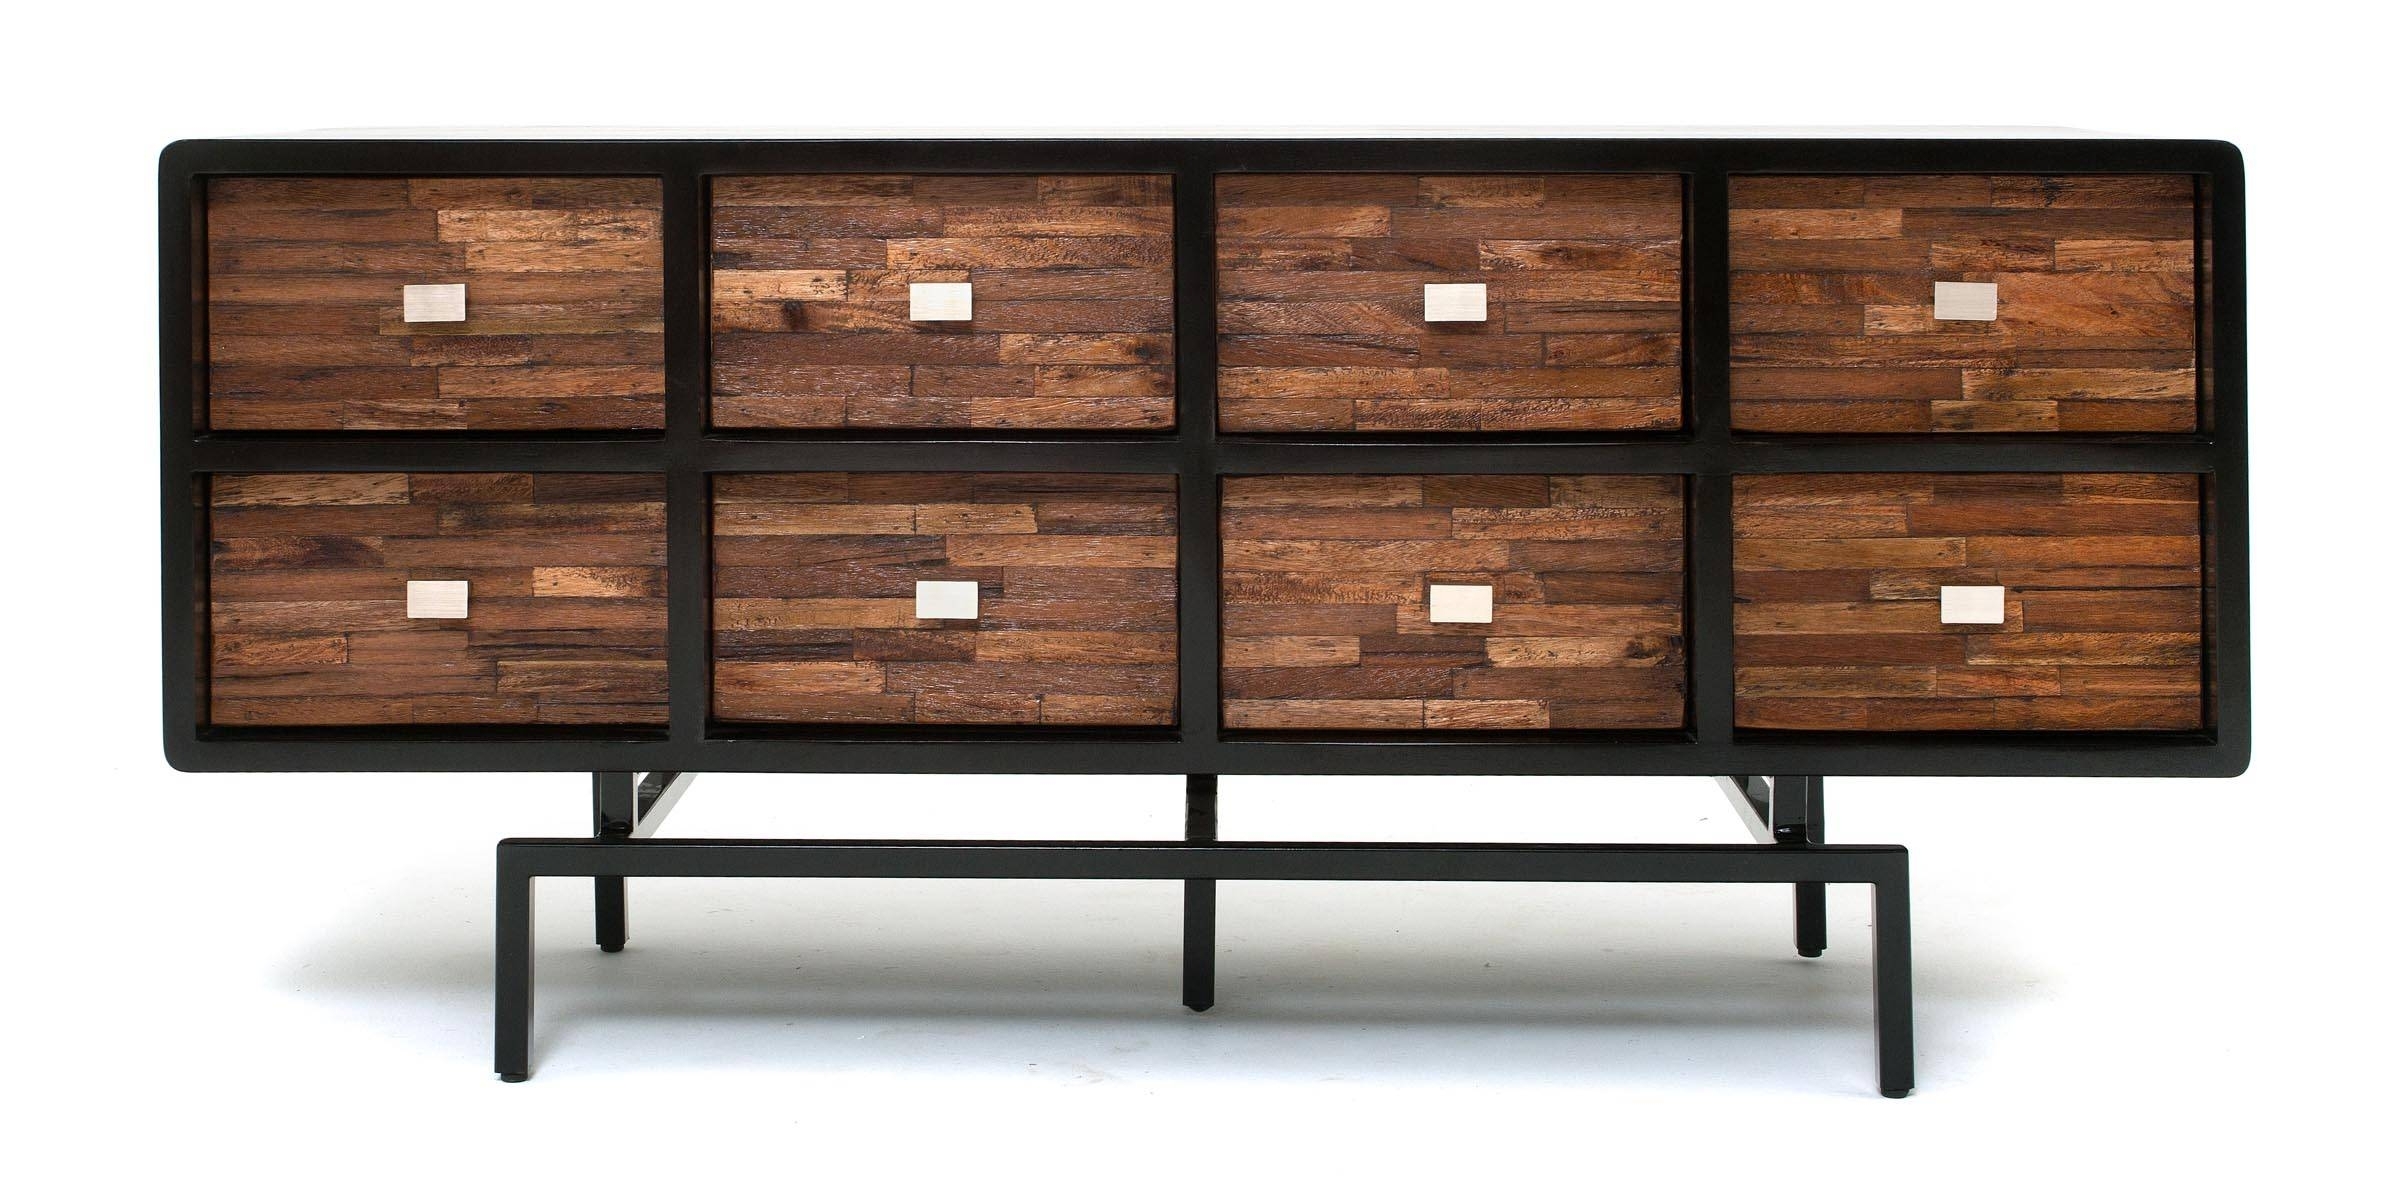 Soft Modern Furniture, Sustainable Sideboard, Reclaimed Wood regarding Contemporary Wood Sideboards (Image 30 of 30)